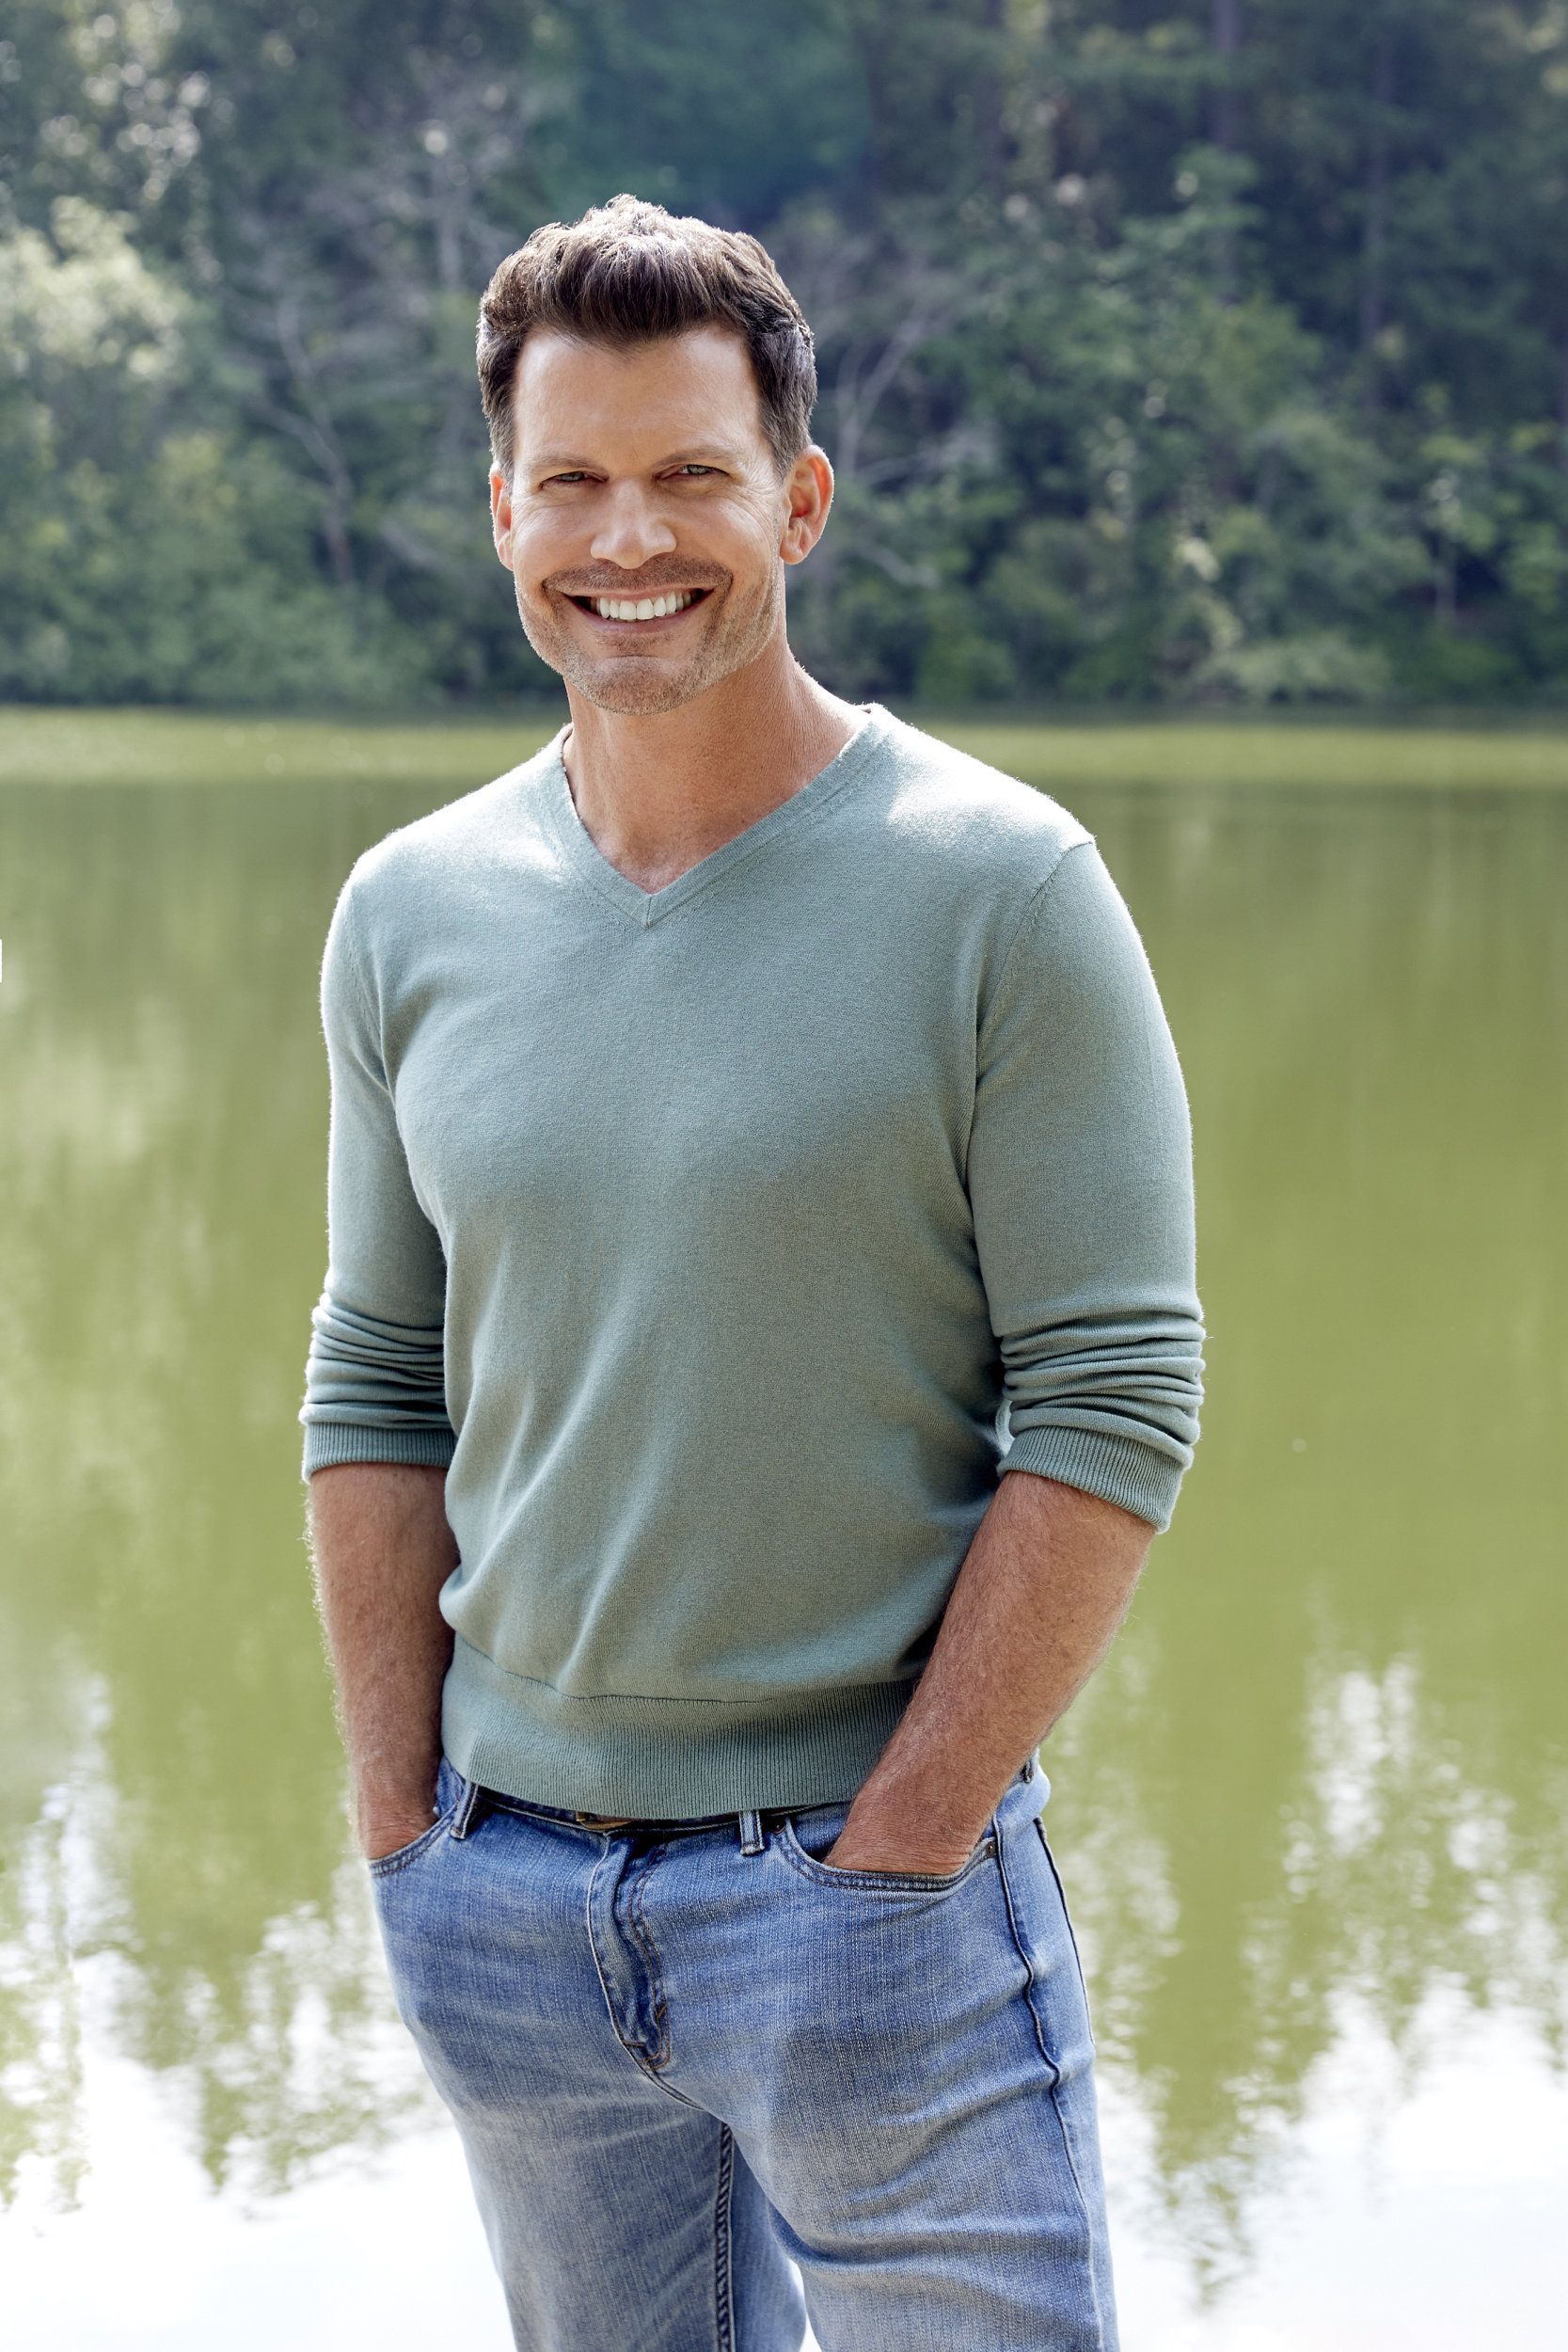 Find Out About The Cast Of The Hallmark Channel Original Movie Love And Sunshine Starring Danica Mcke Hallmark Channel Hallmark Movies Adventure Time Cartoon